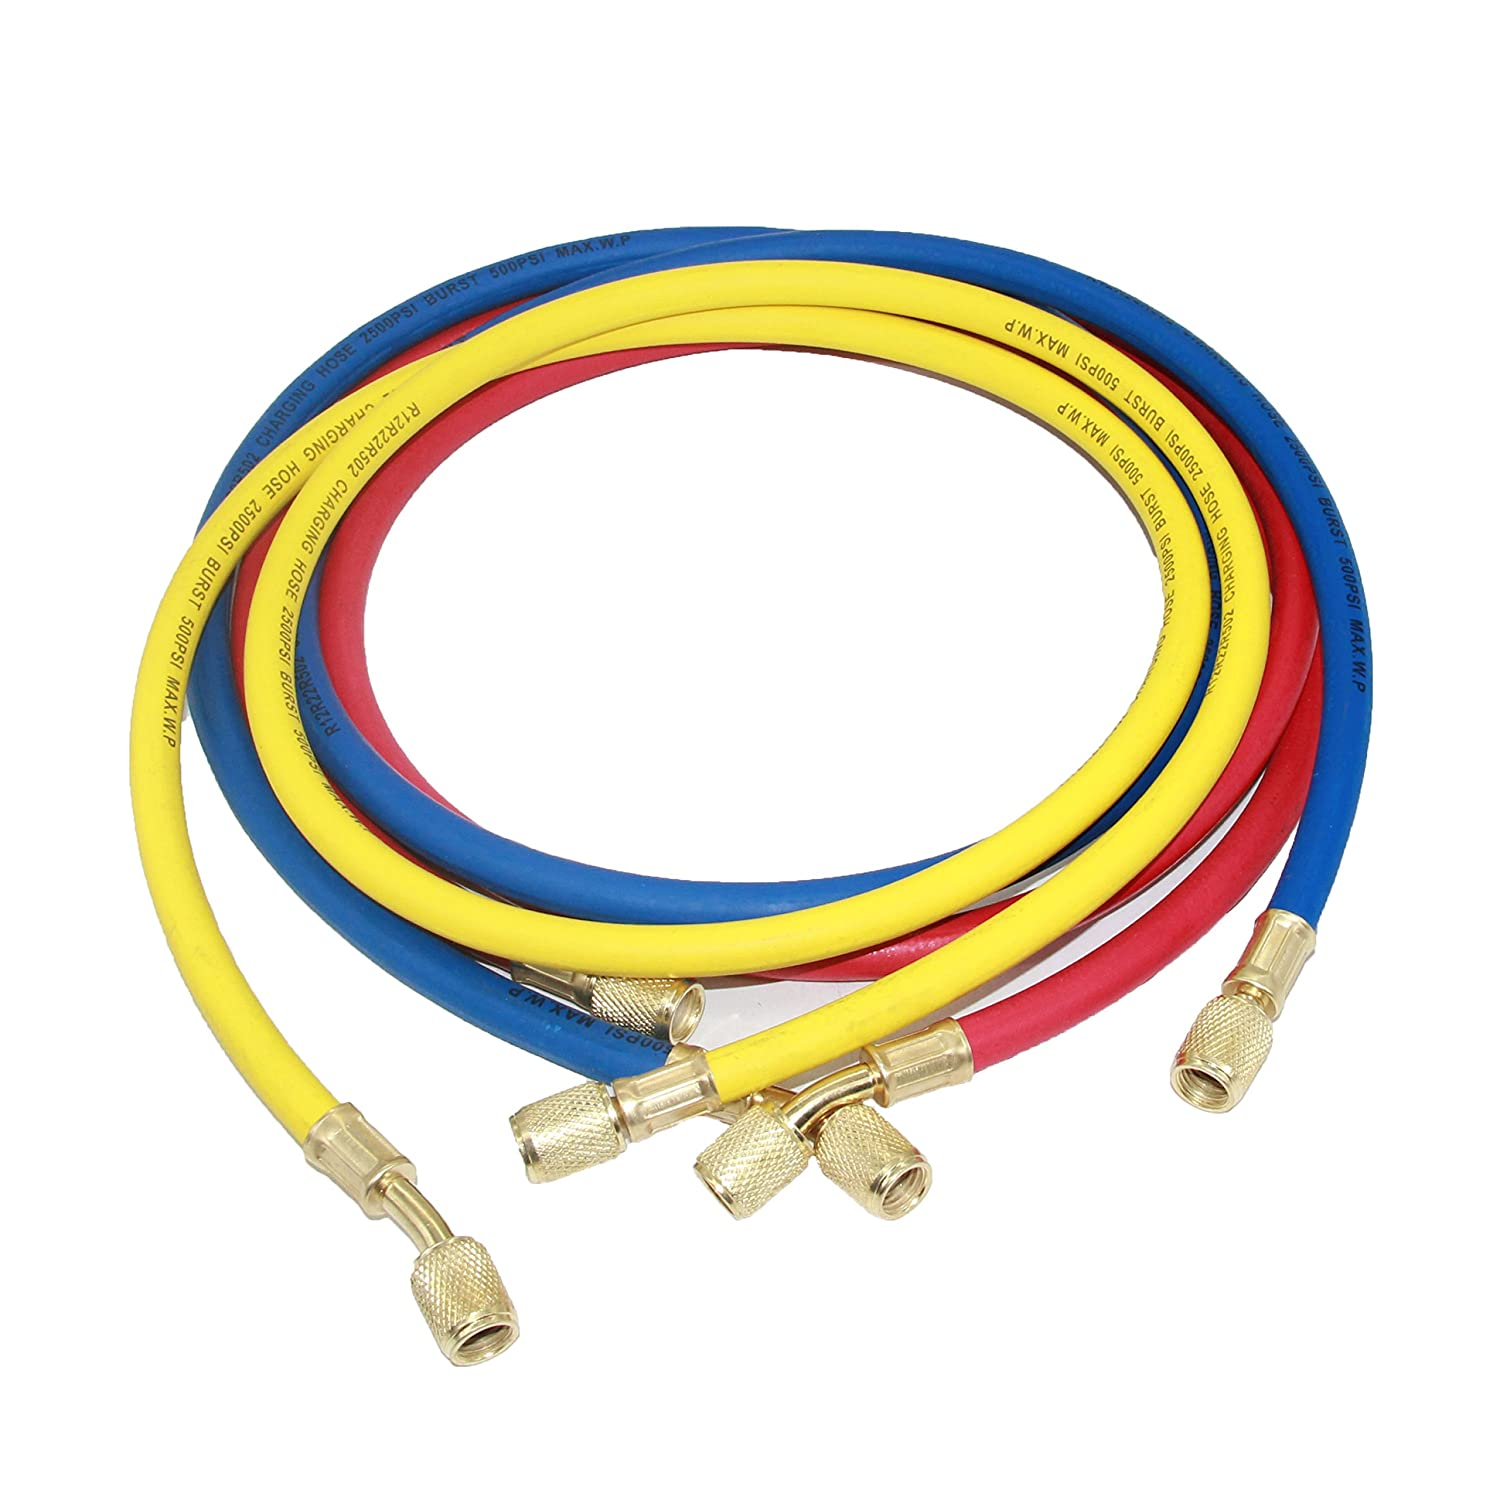 Joyway 3 color 1/4' SAE Thread Car HVAC Air Conditioning Refrigeration Charging Hose Tube R12 R22 R502 Joywayus